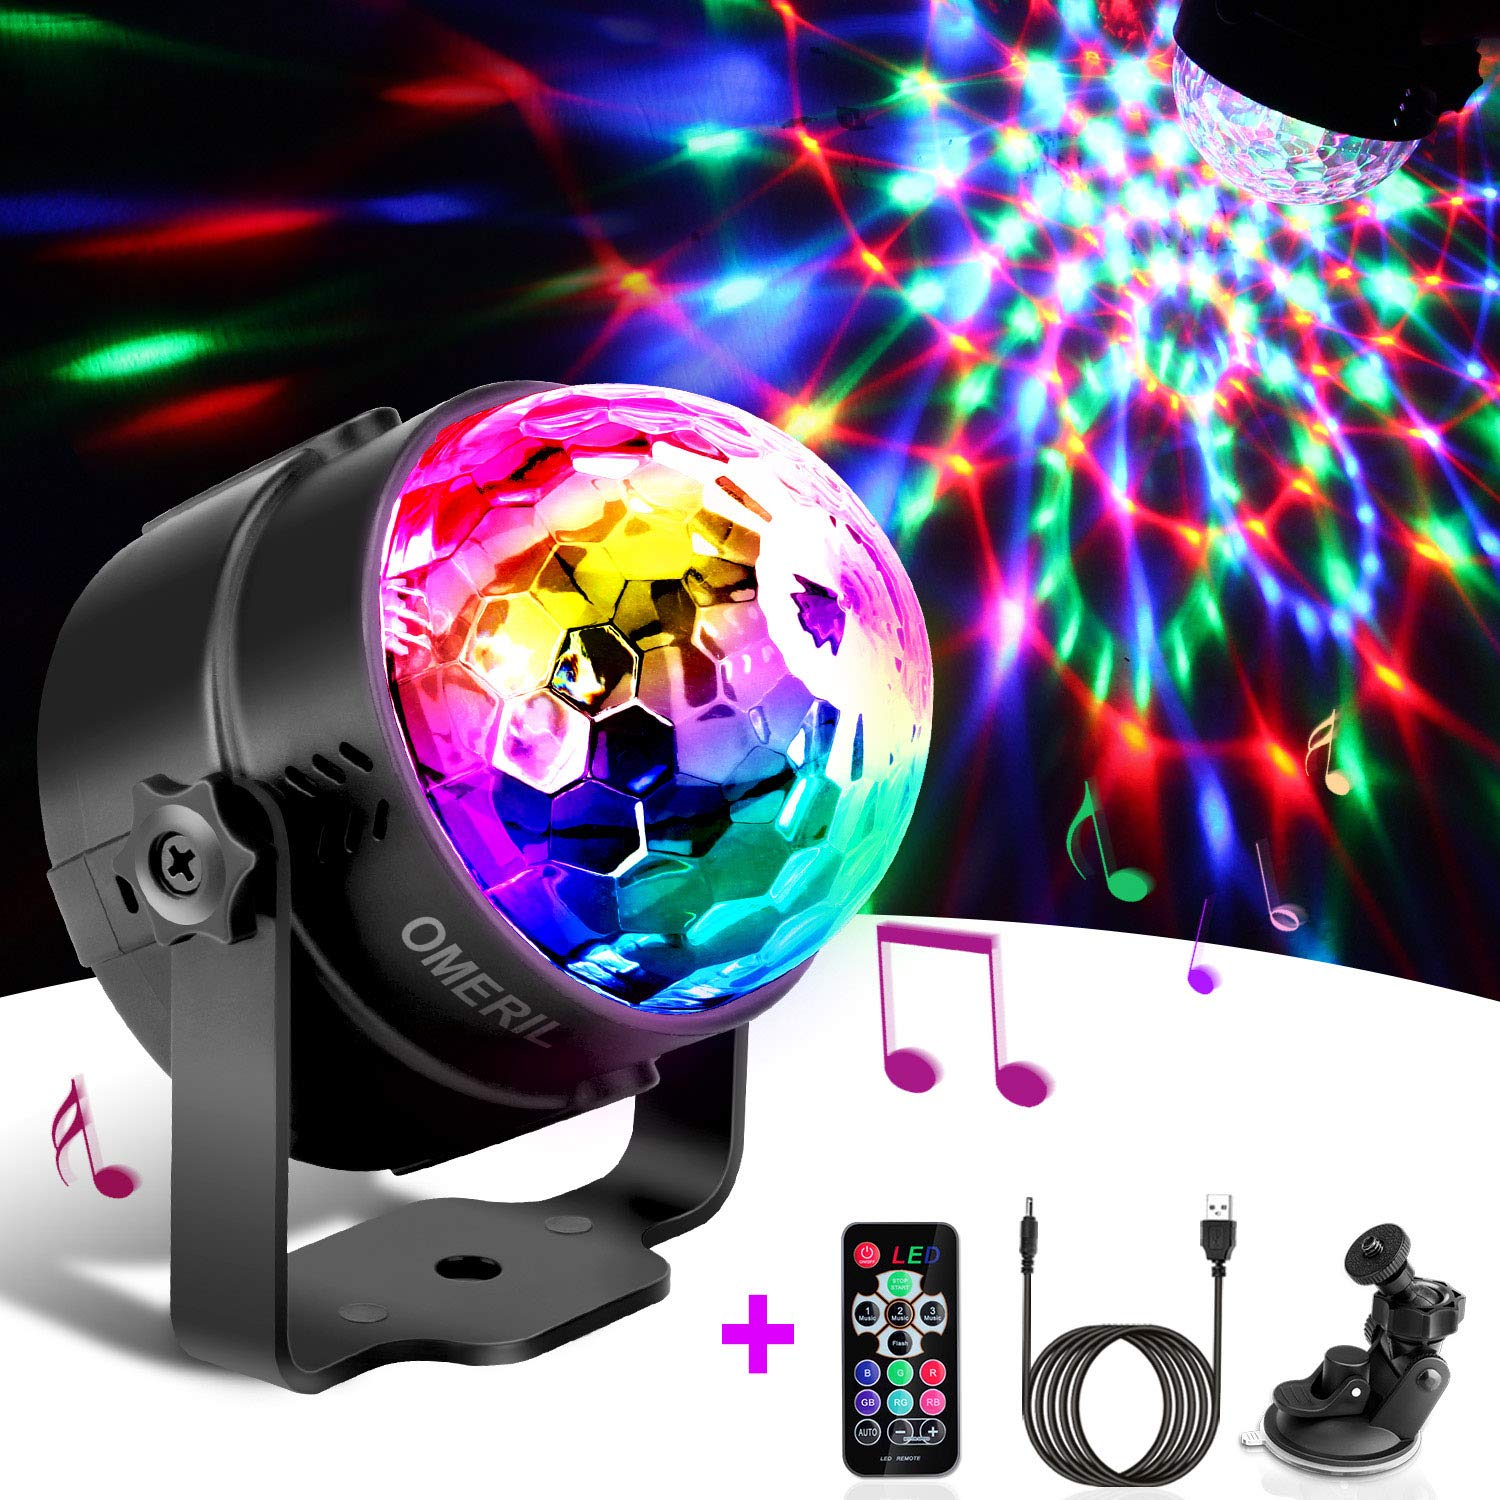 ... 3W RGB Party Lights with Remote Control for Kids Birthday, Family  Gathering, Christmas Party, Home-USB Powered: Amazon.co.uk: Musical  Instruments